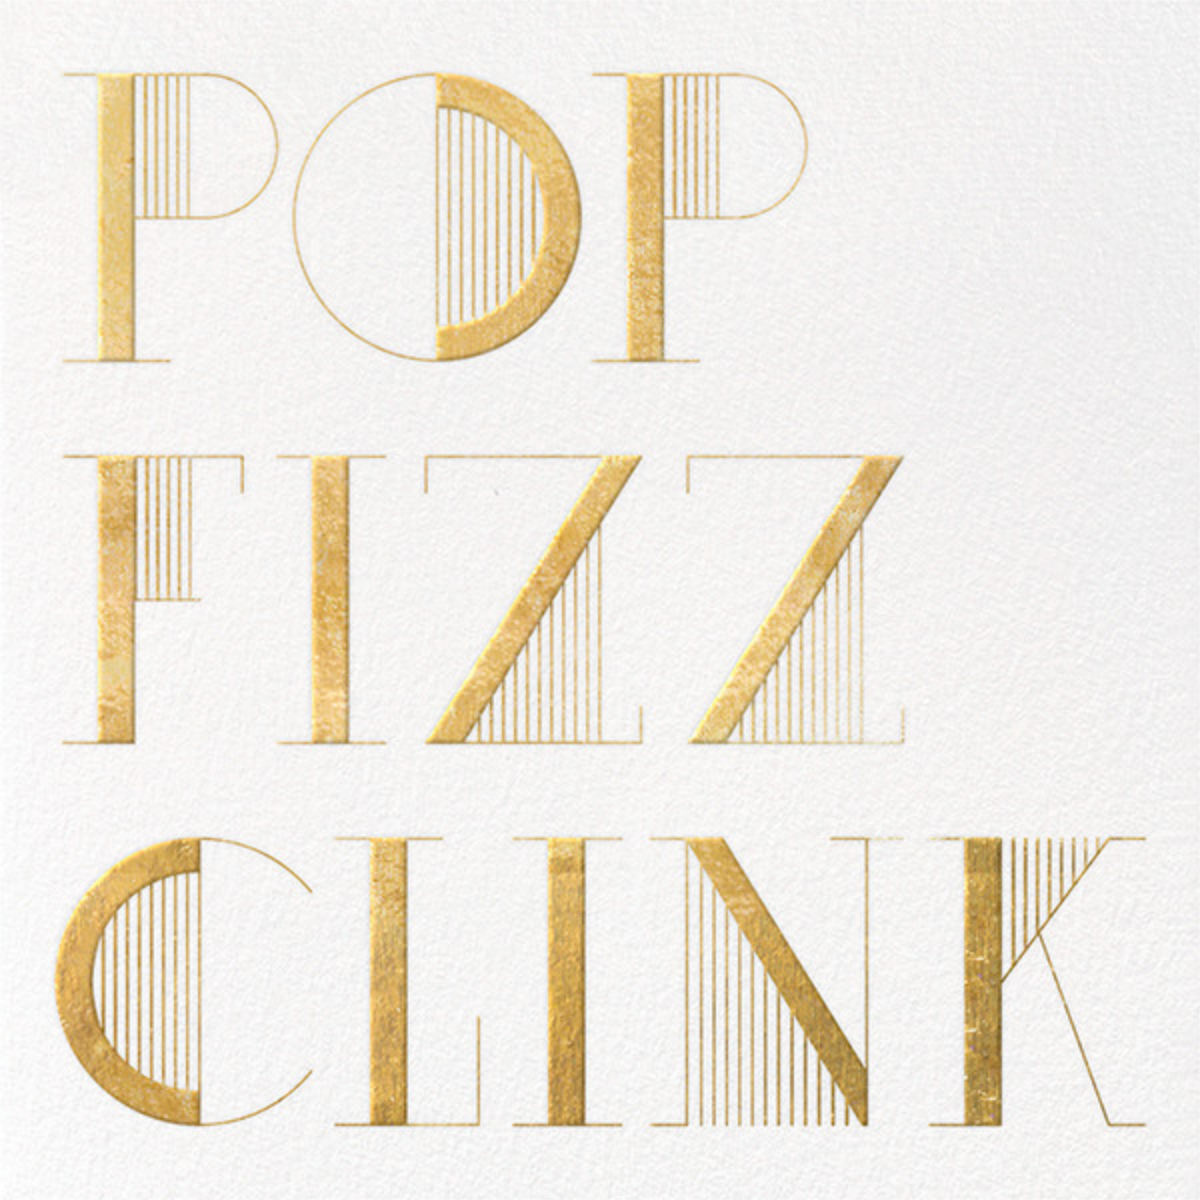 Pop Fizz Clink (Square) - White/Gold  - kate spade new york - Cocktail party